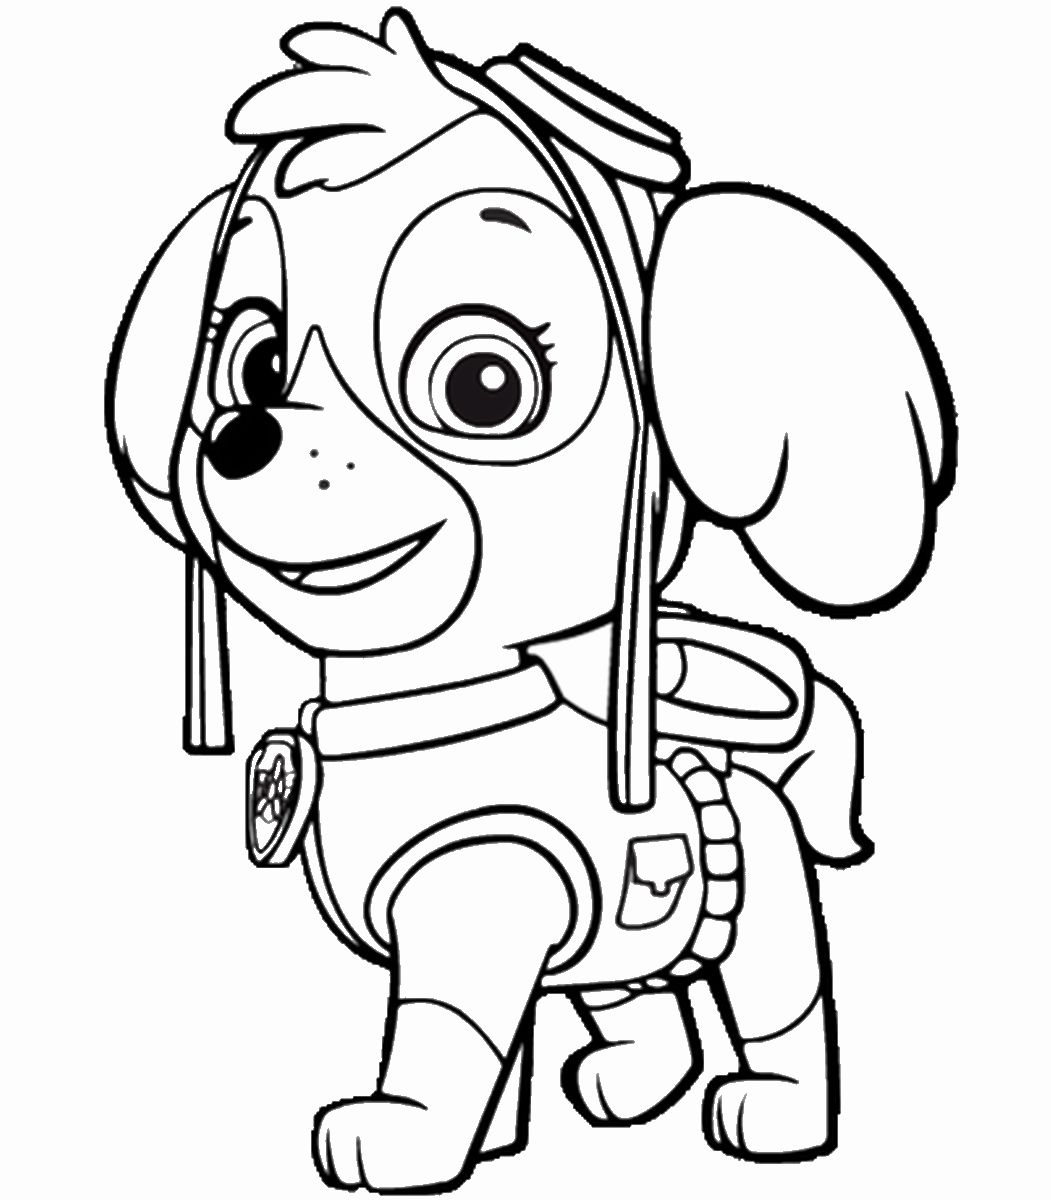 paw patrol marshall coloring 28 chase paw patrol coloring page in 2020 with images paw marshall patrol coloring